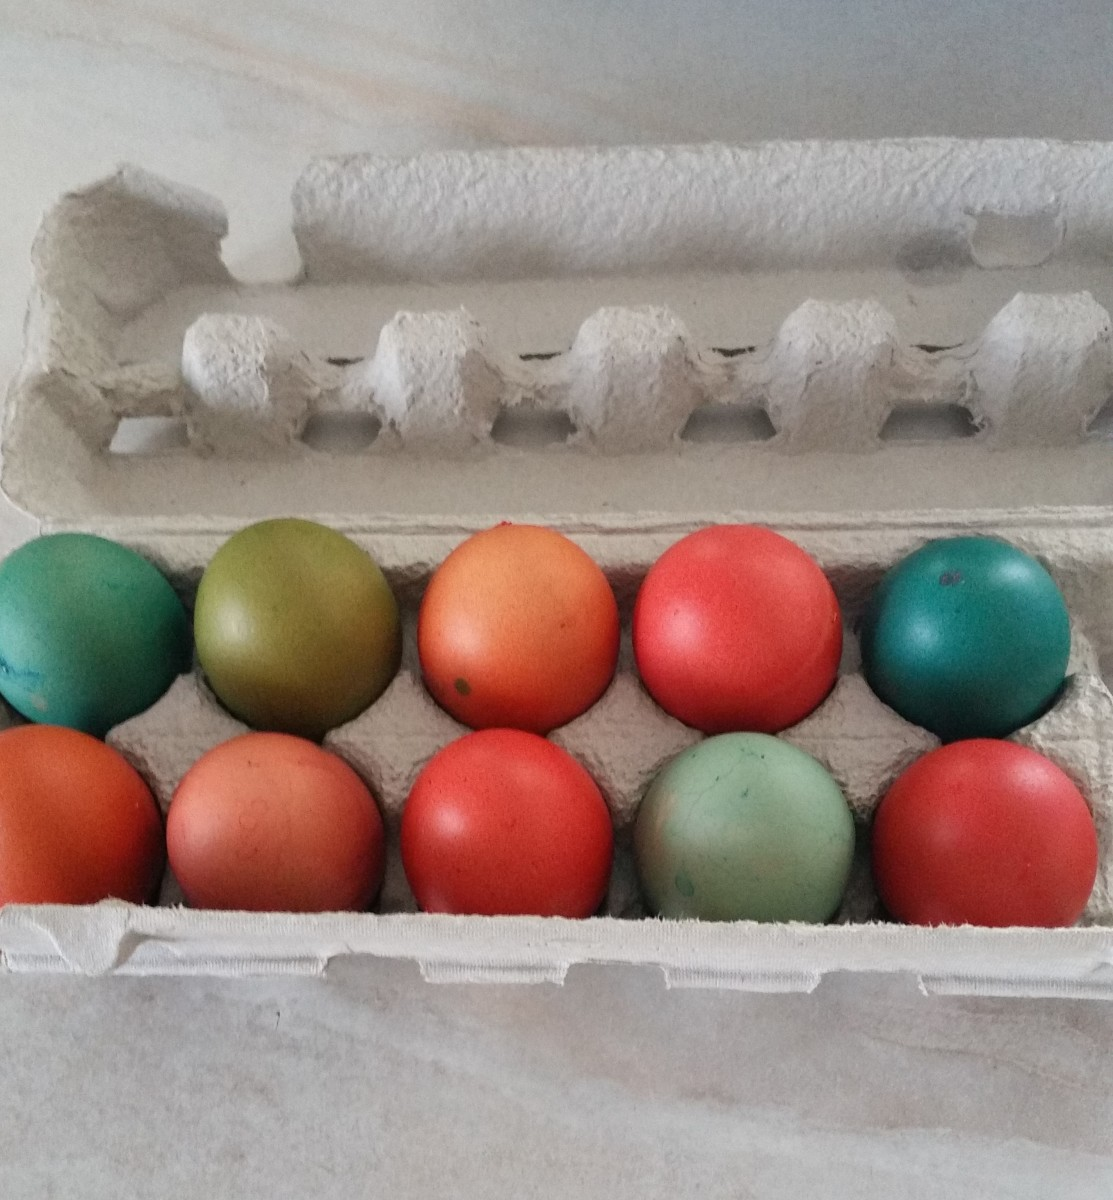 How to Make Dyed Easter Eggs: An Easy Craft to Do With Kids